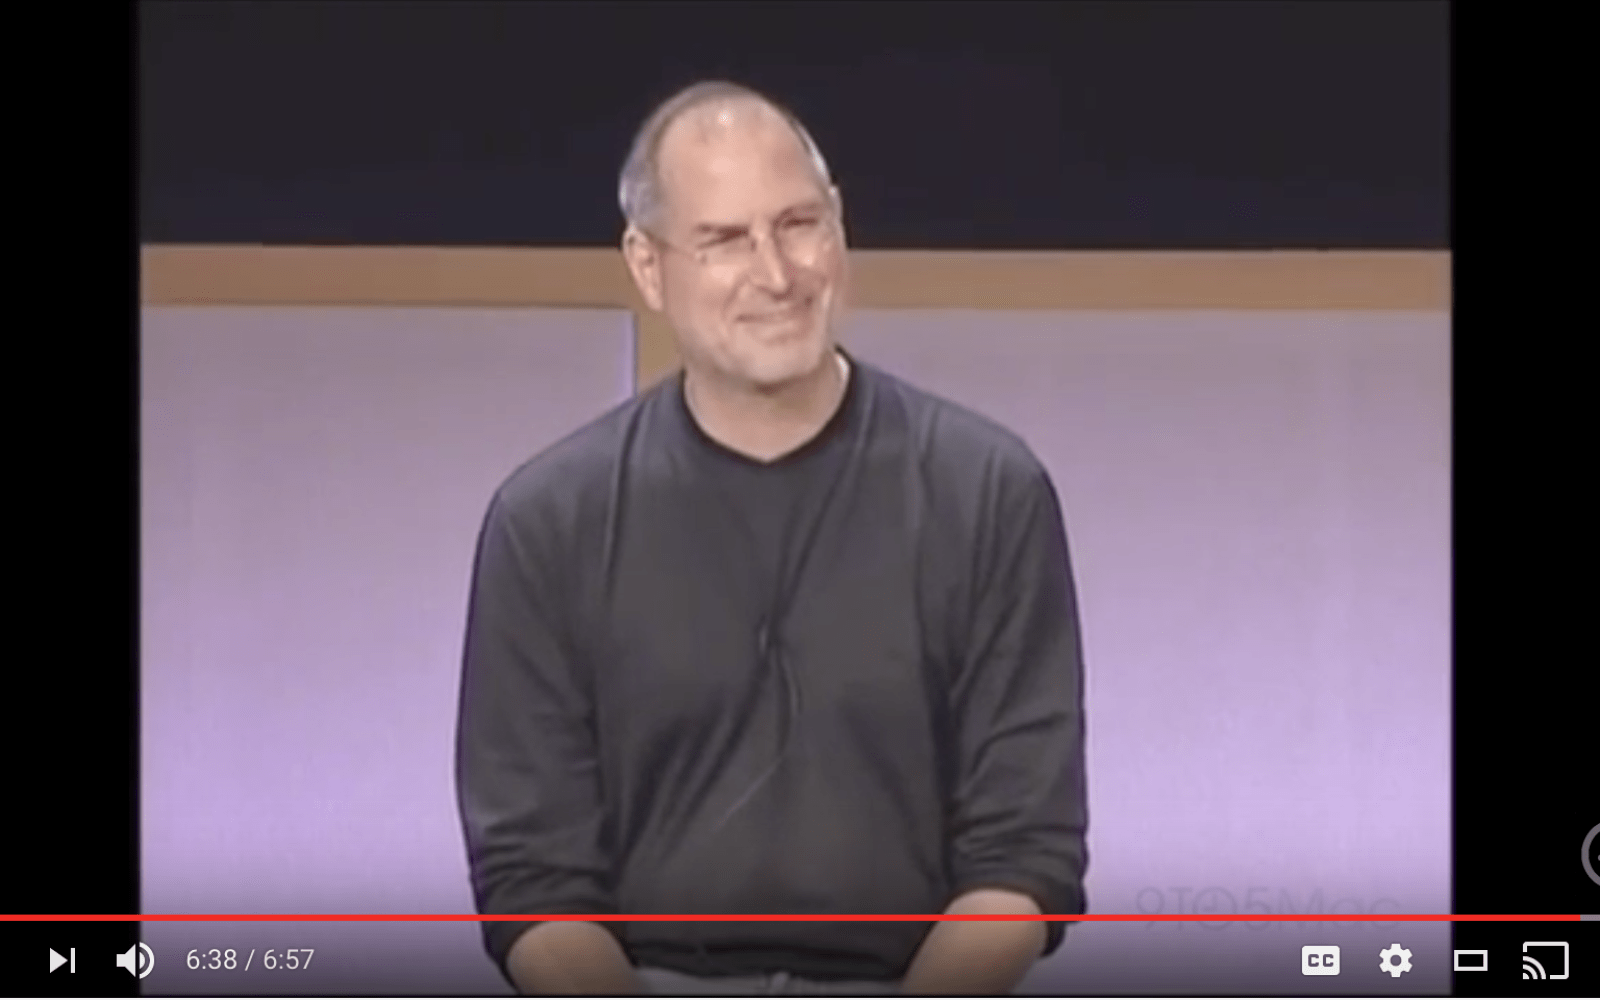 Remembering Steve Jobs 5 years on [video]